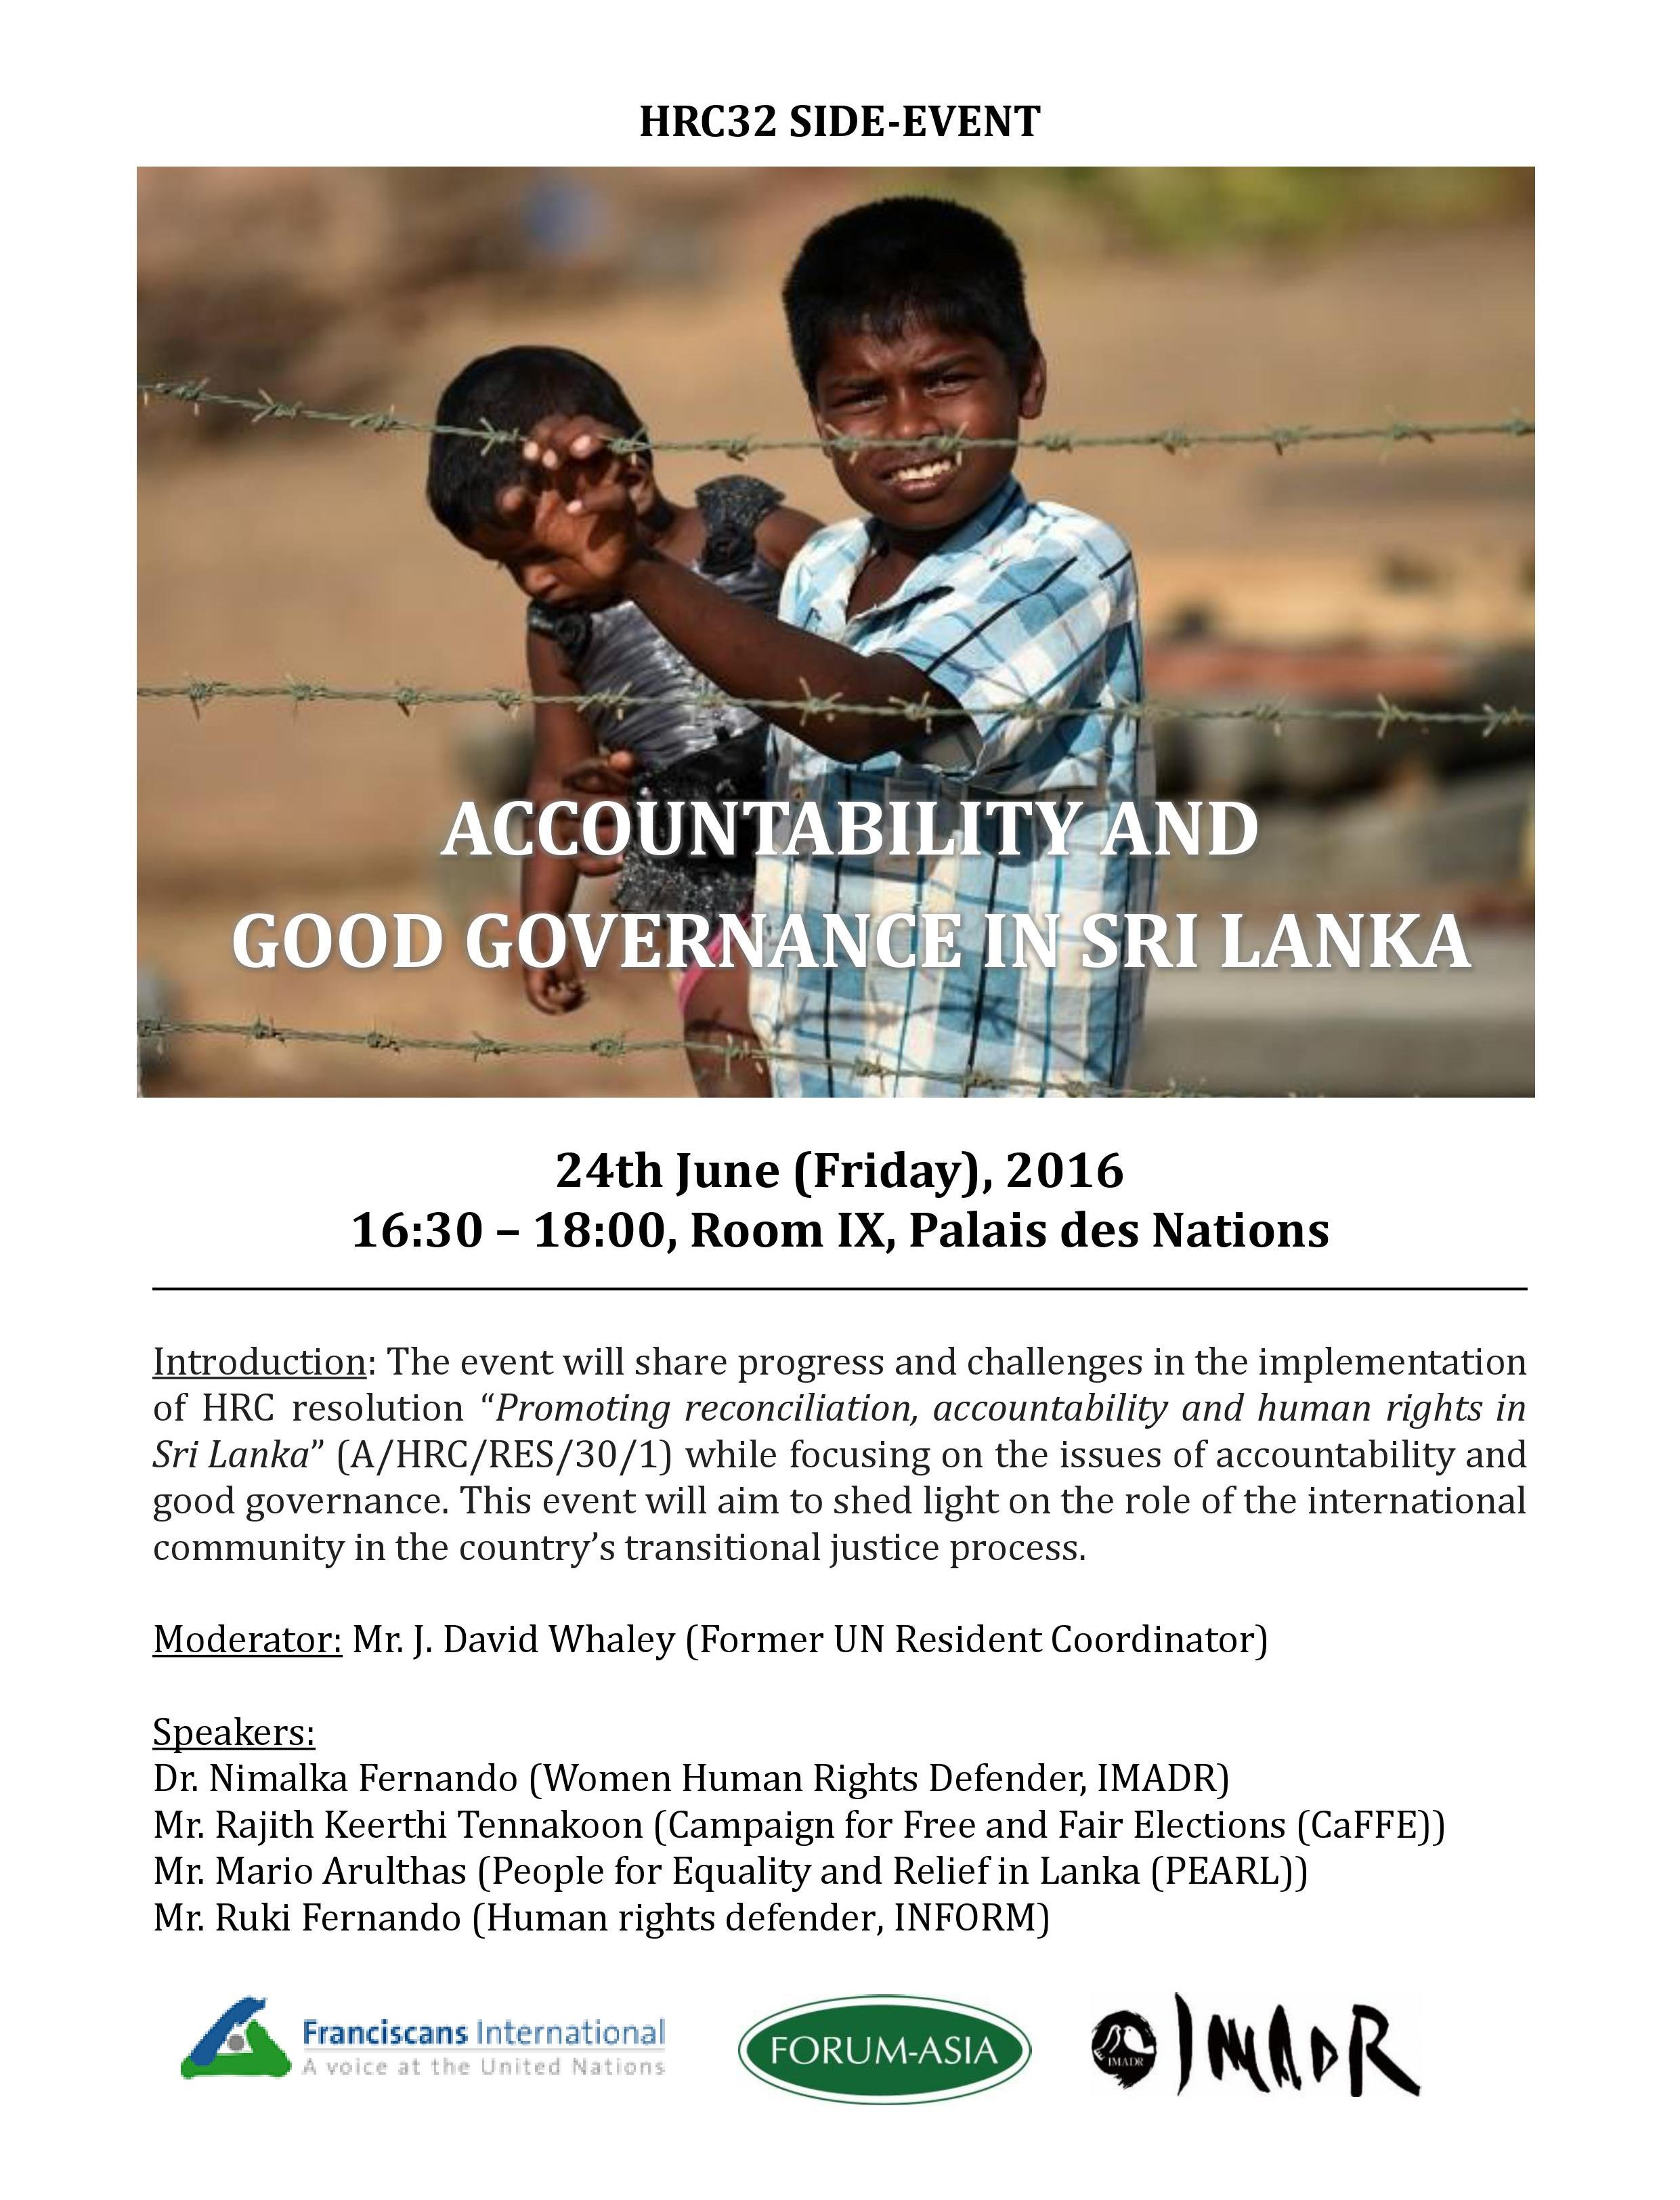 Invitation - HRC32 side event_Accountability and Good Governance in Sri Lanka (4.30pm, 24 June 2016, Room IX)